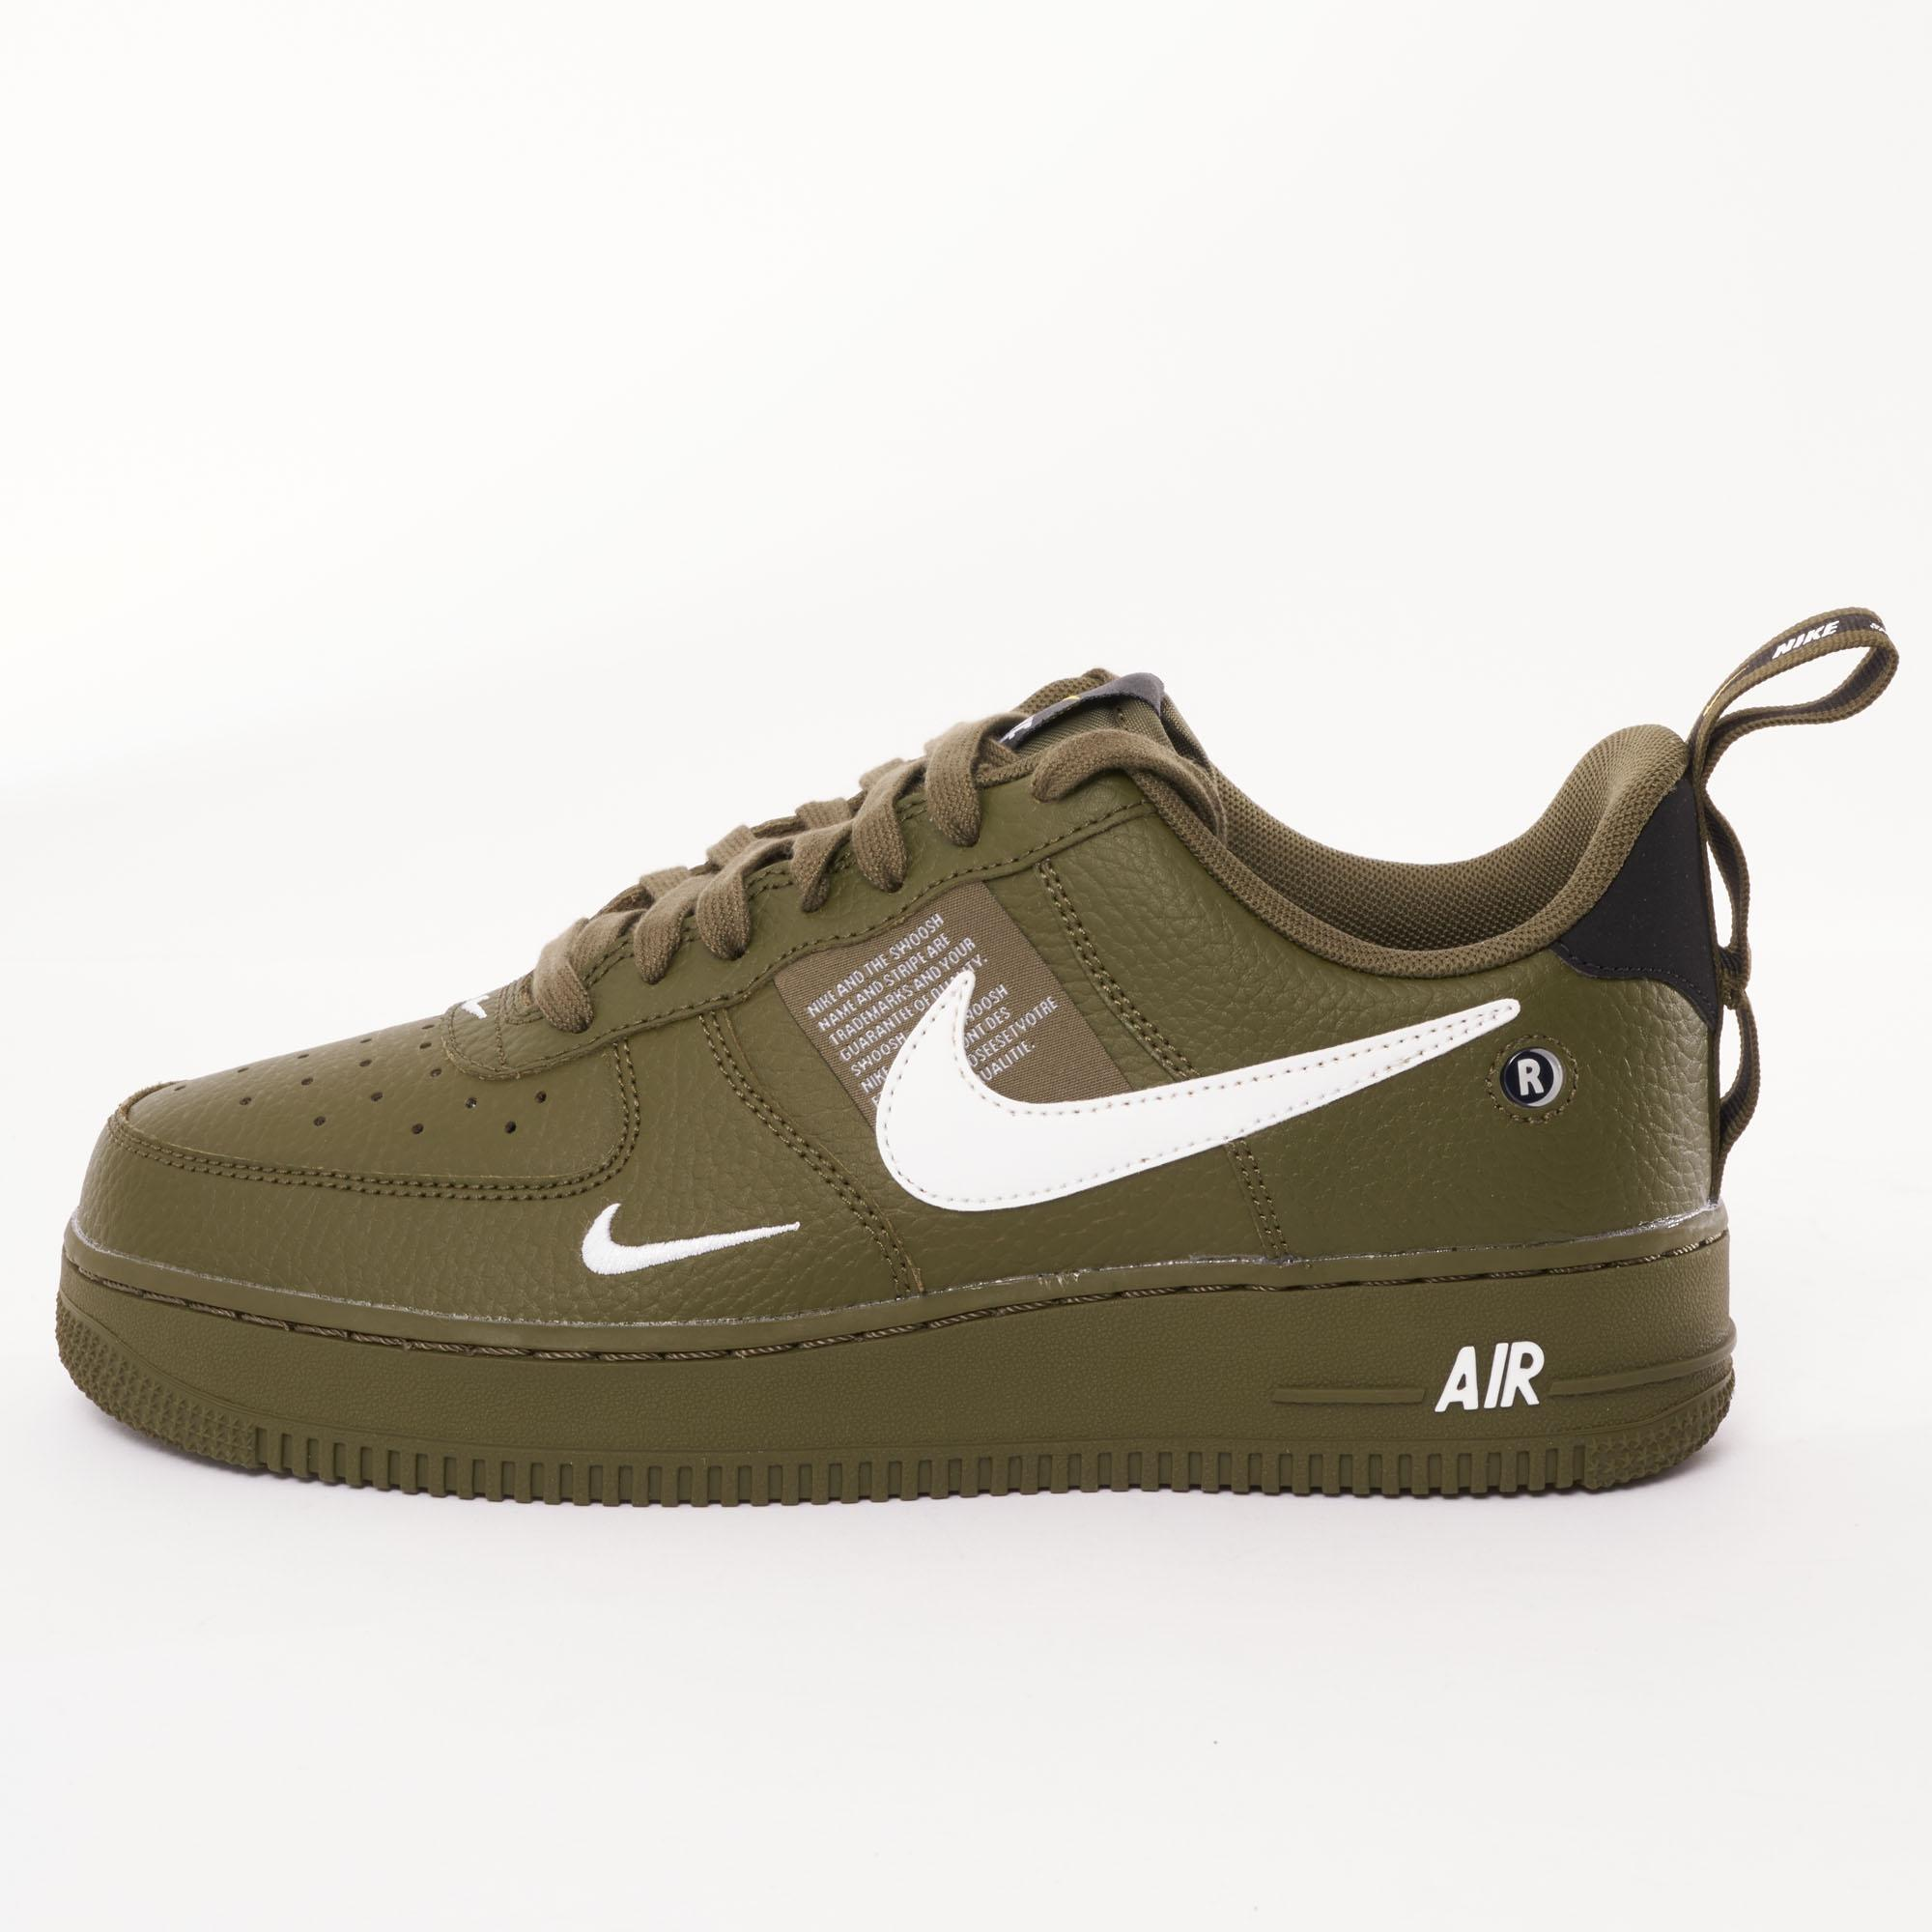 Nike Green Air Force 1 Utility Trainers for men